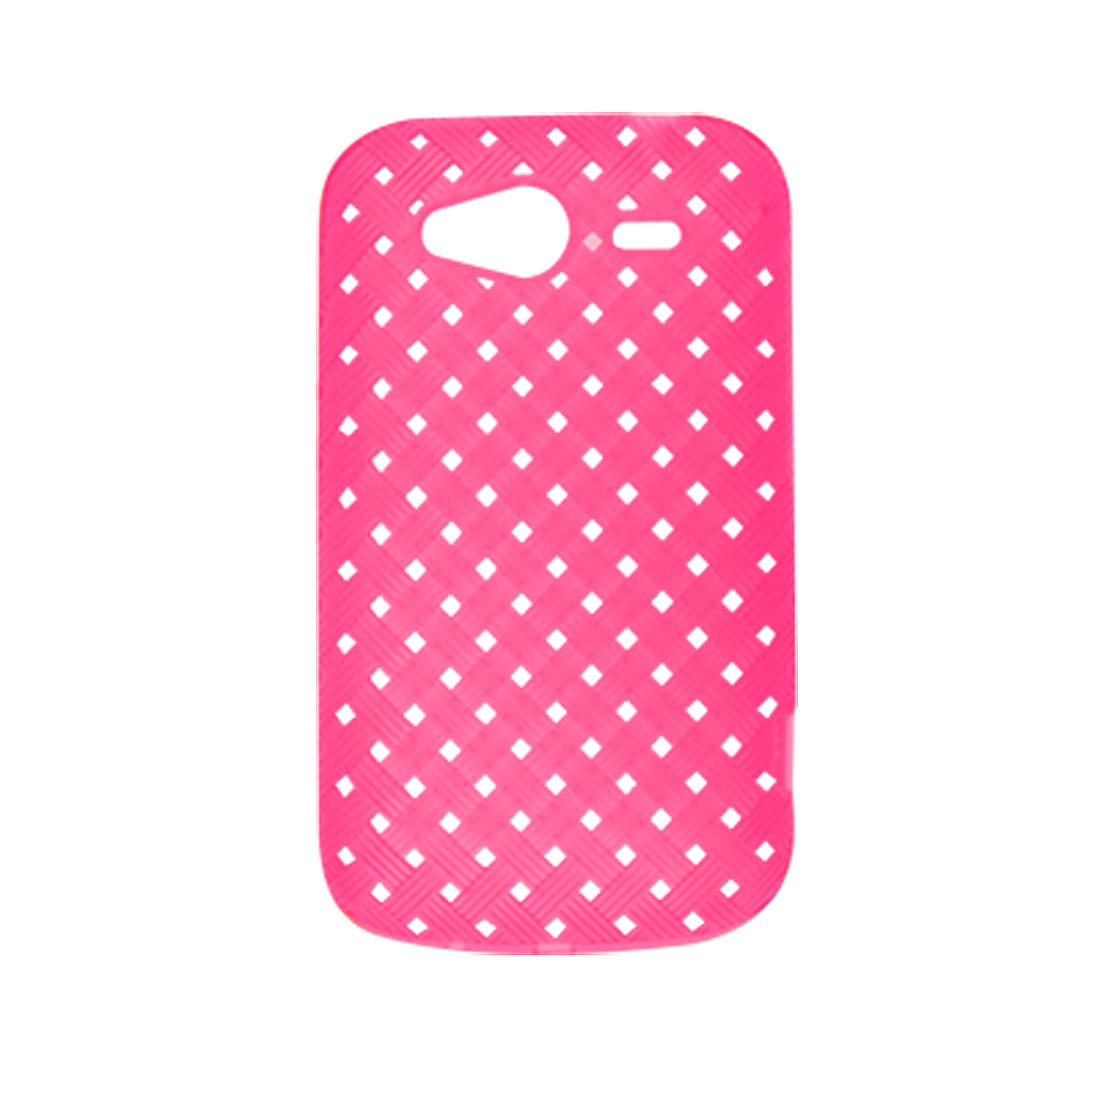 Shocking Pink Perforated Rough Shell Cover Case for HTC G8S Wildfire S G13